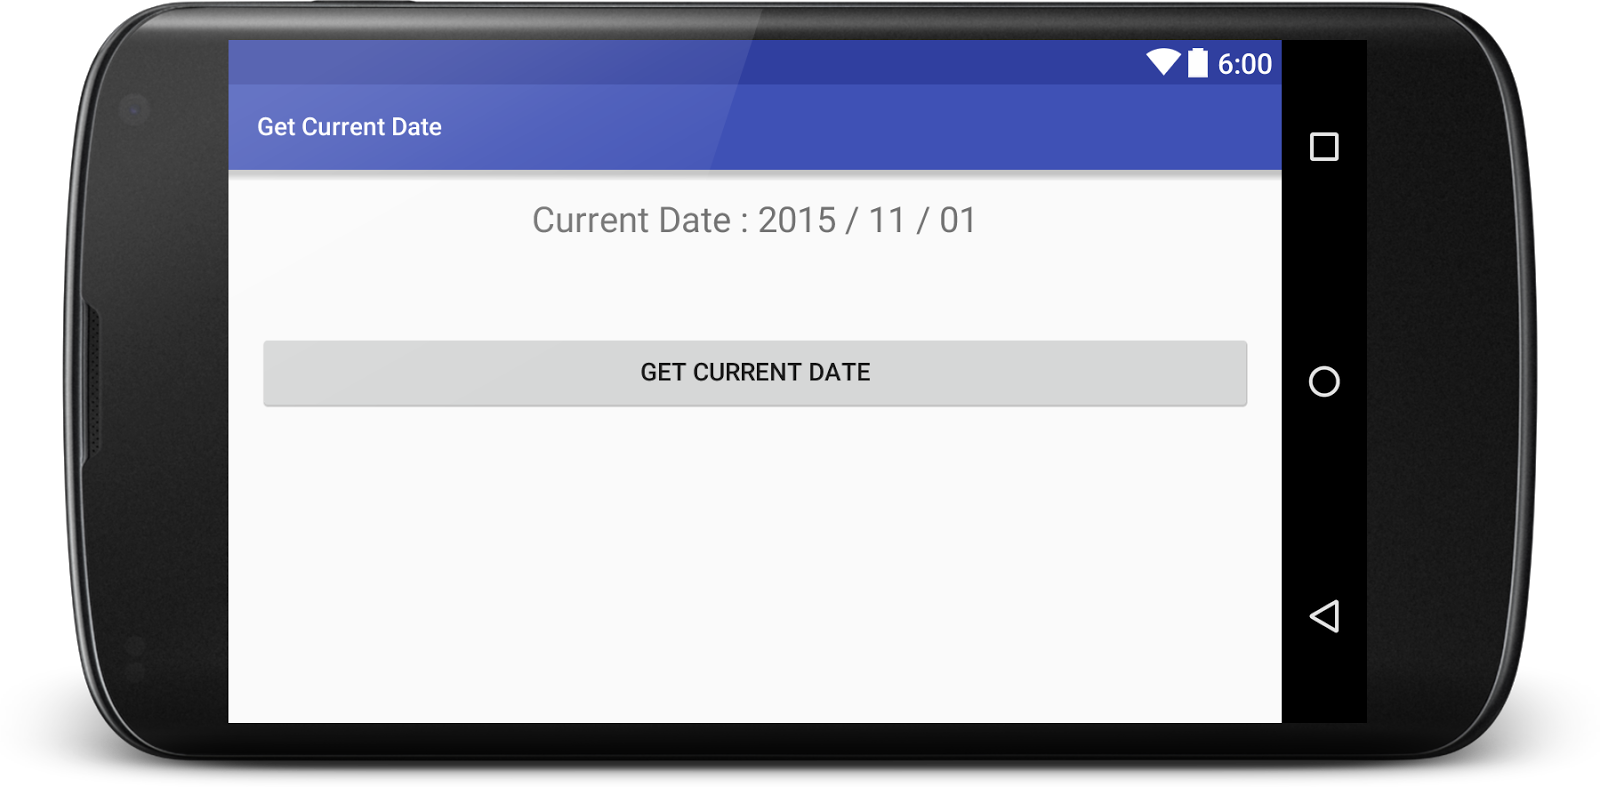 Get Current Date in Android Programmatically